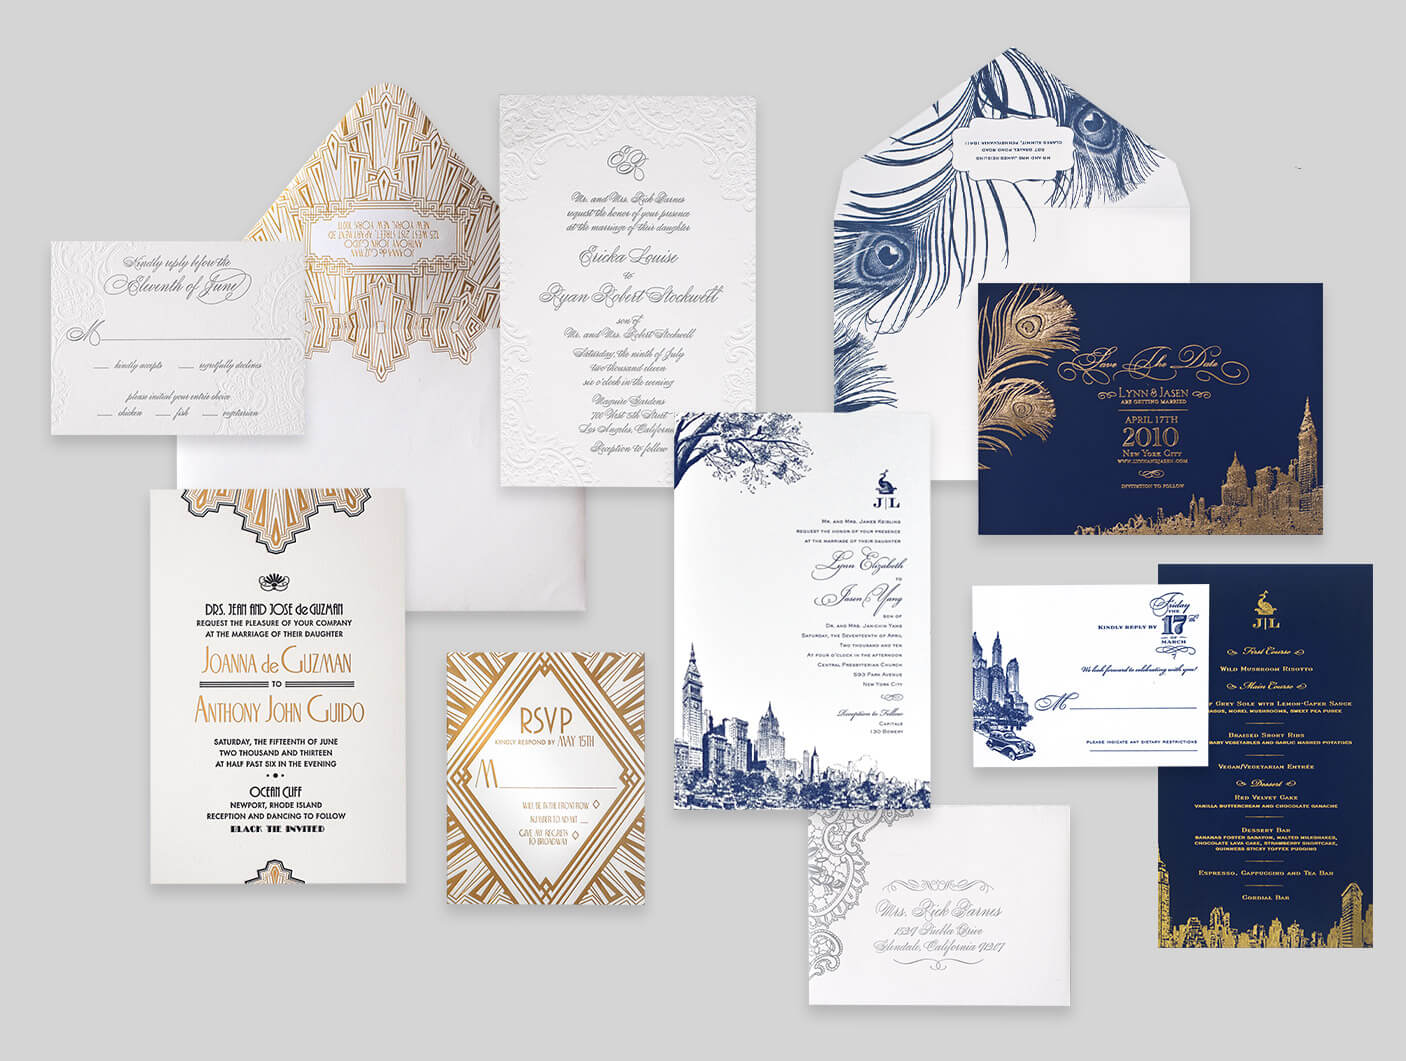 Art deco and New York City inspired invitations